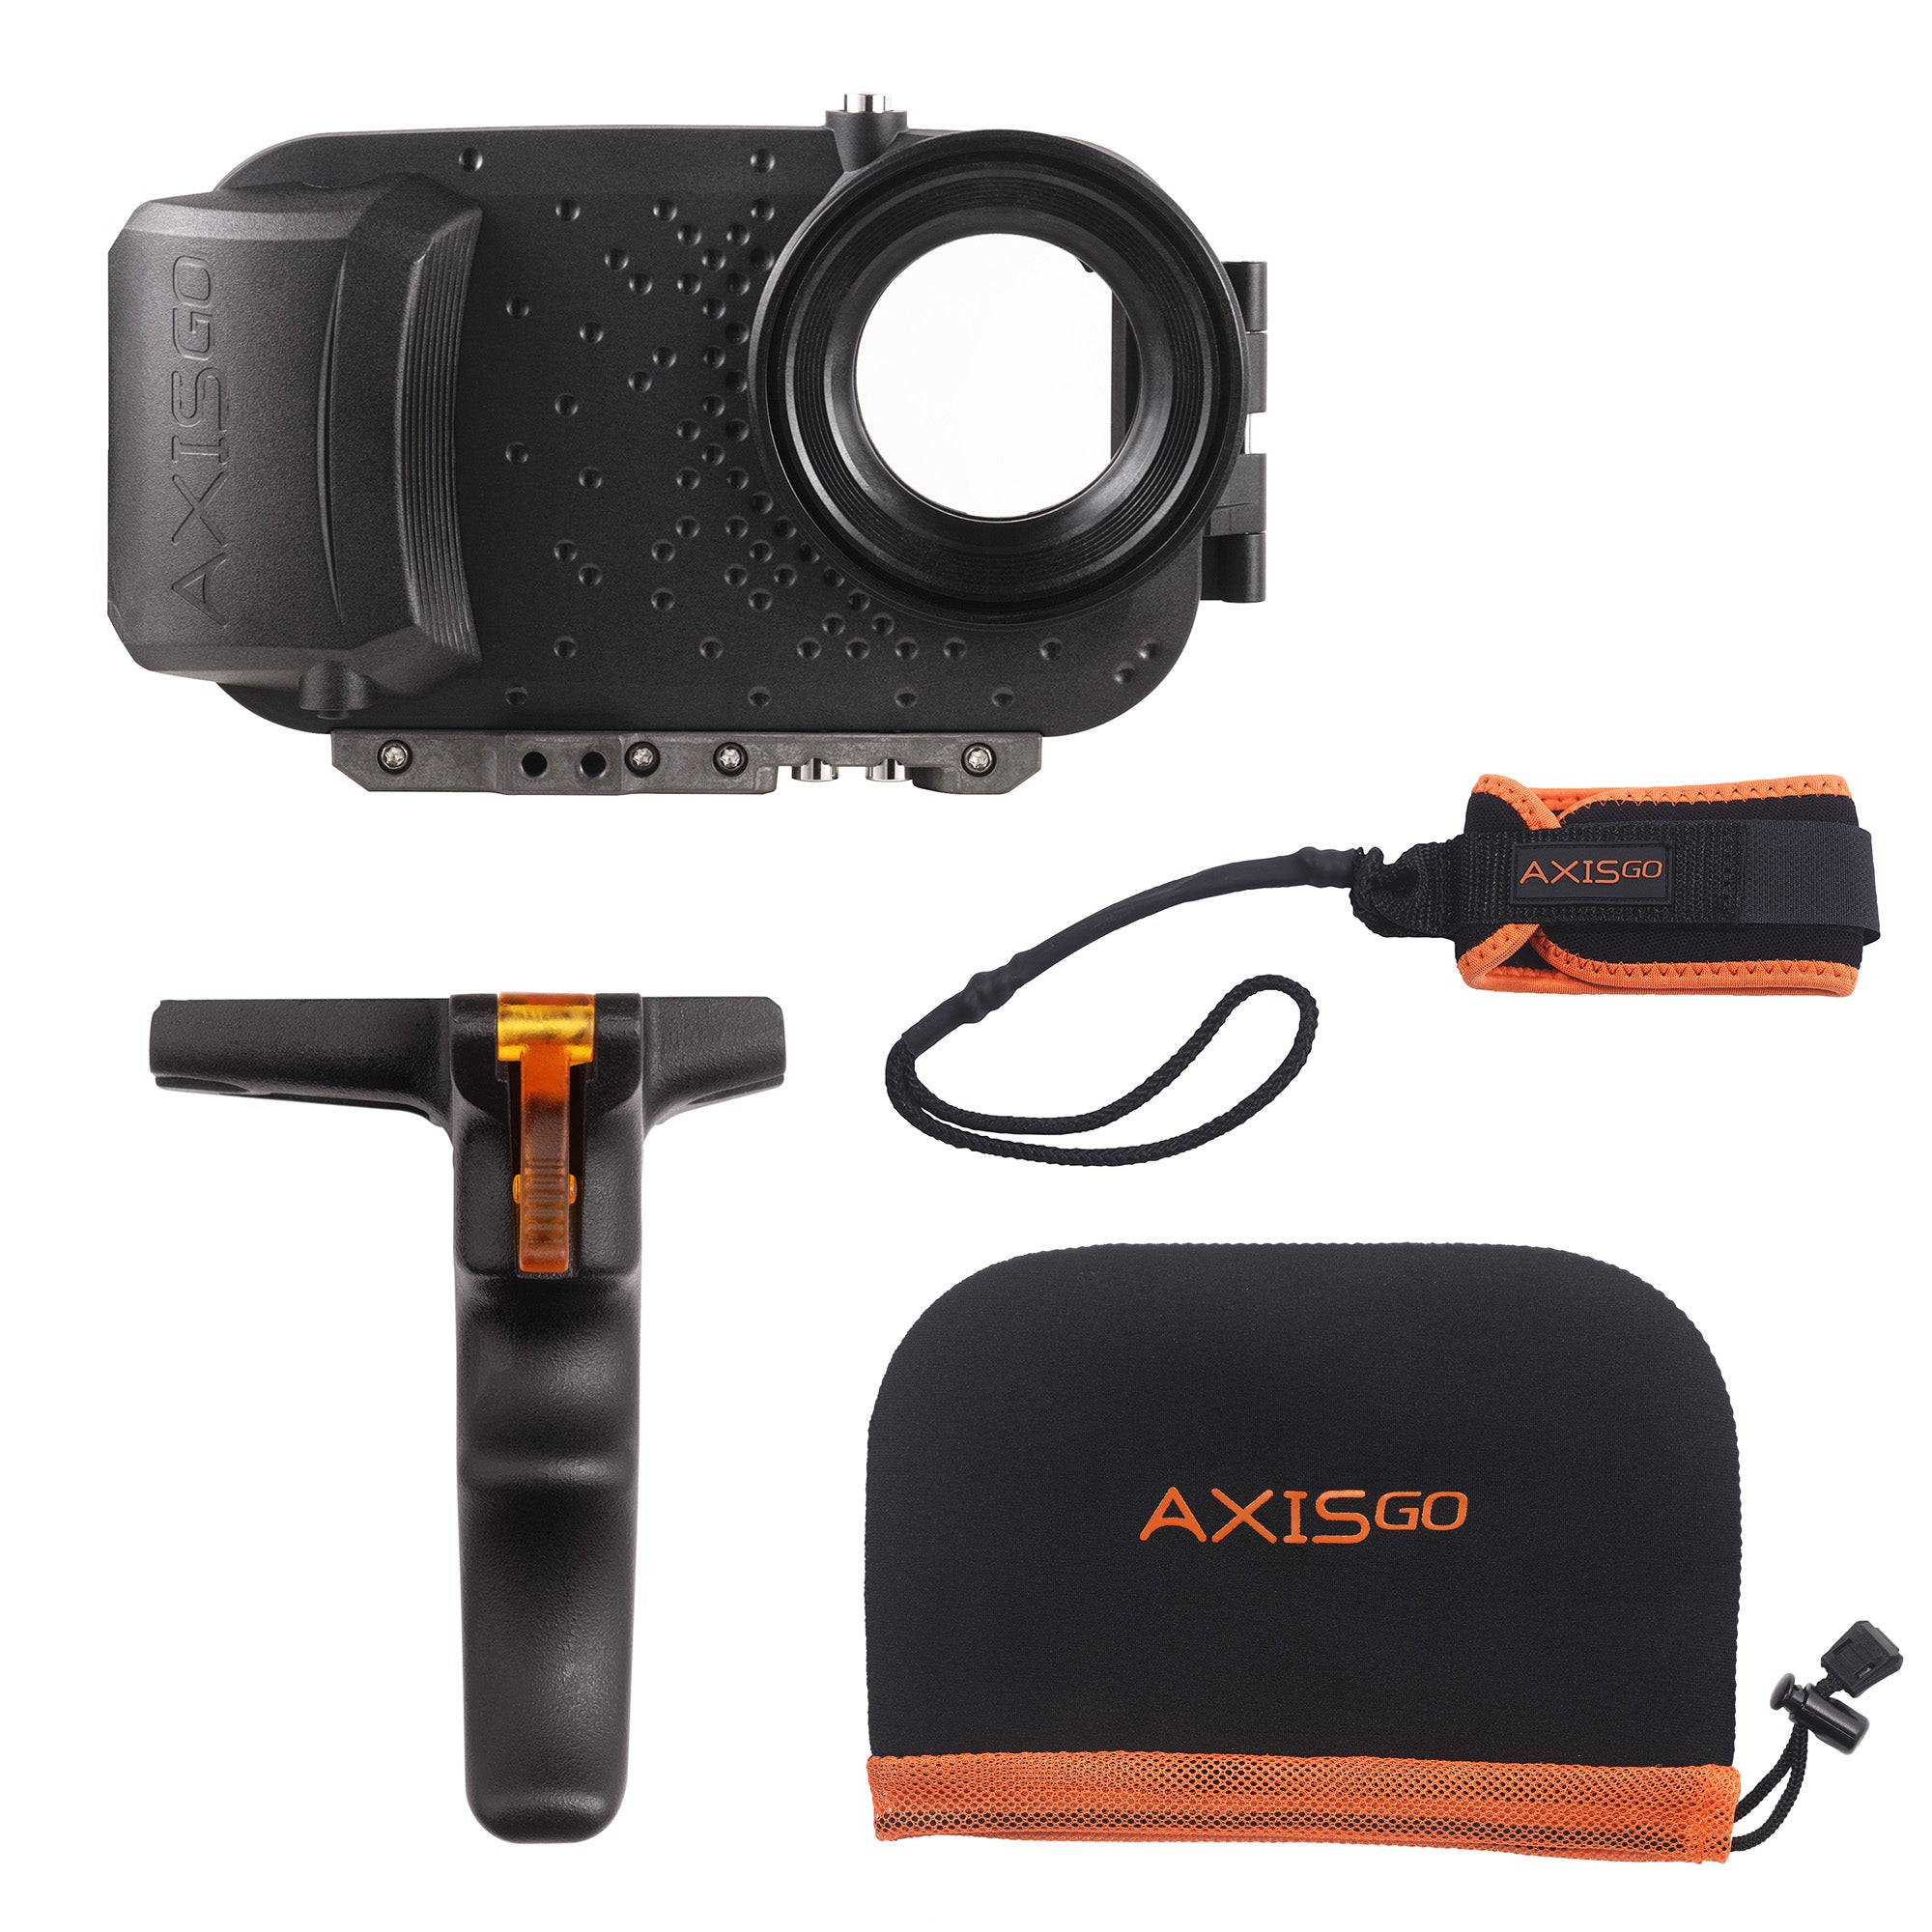 View of  the AxisGO 11 Pro  Action Kit including:  1 - Black AxisGo Water Housing, 1 - AxisGO Pistol Grip, 1 - AxisGO Sports Leash, and 1 - AxisGO Protective Case.